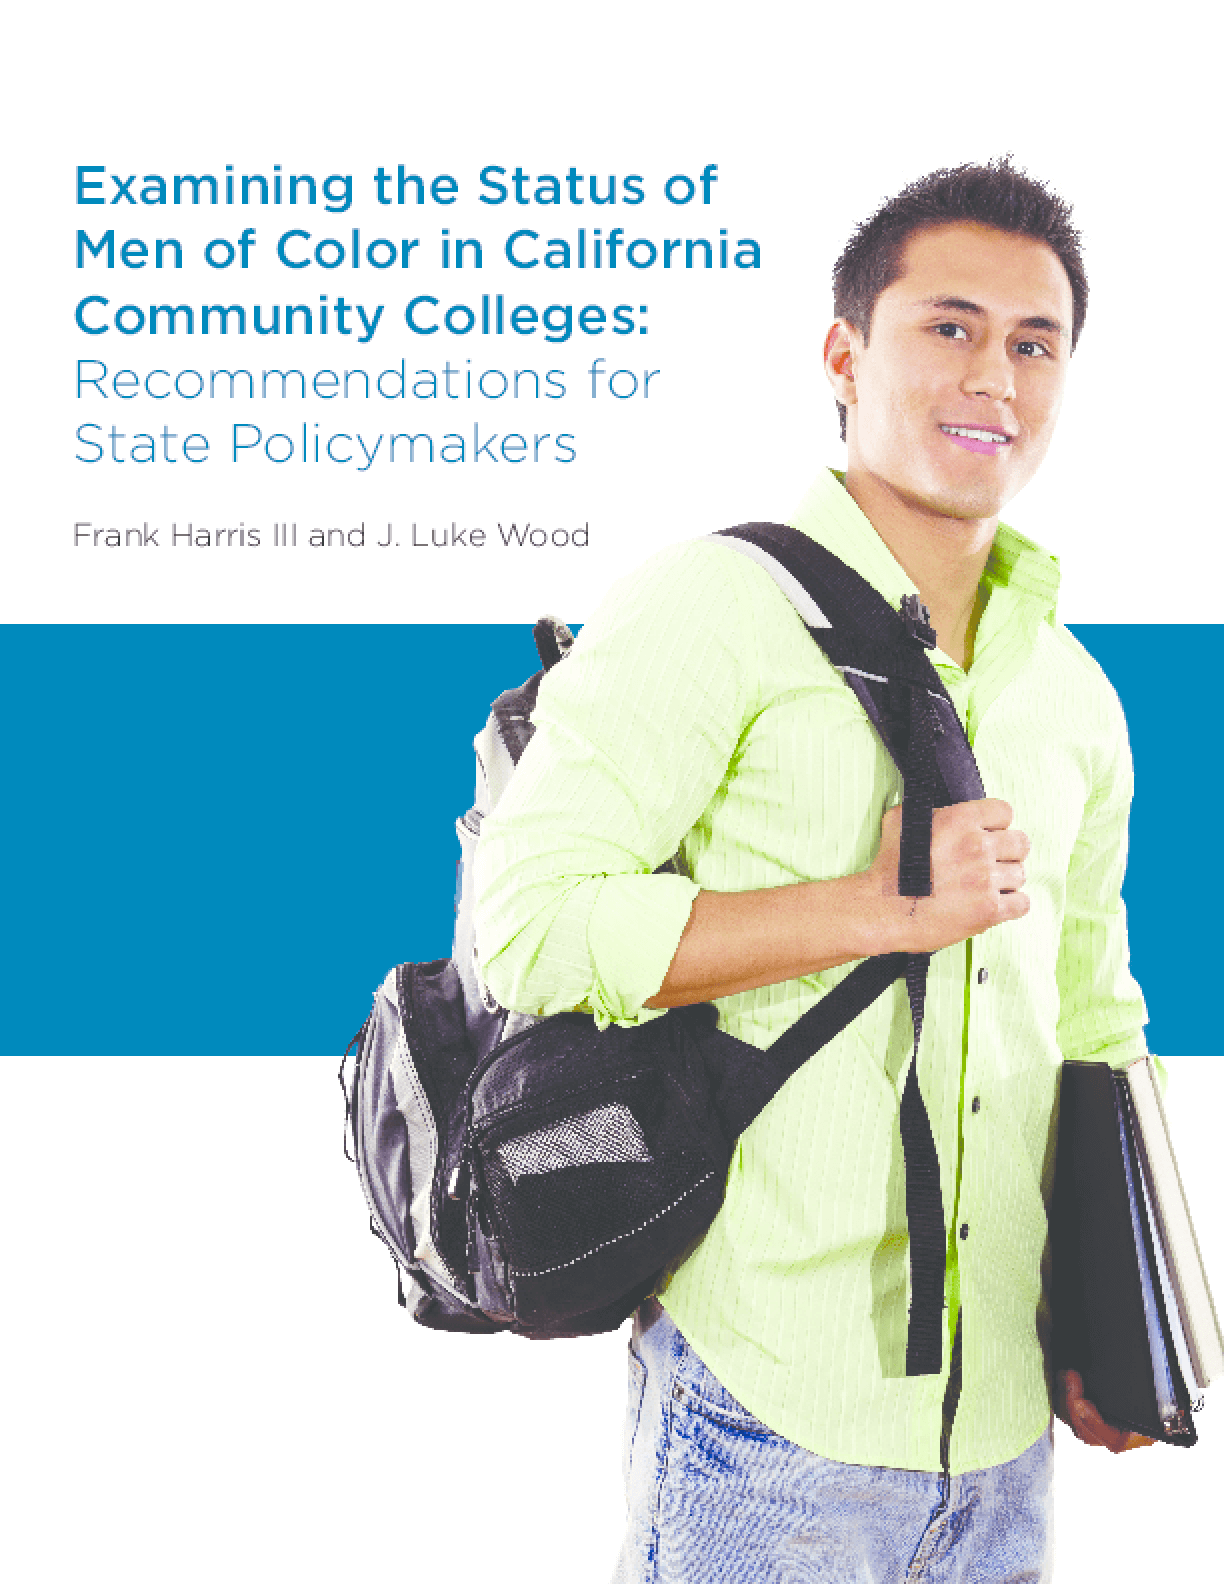 Examining the Status of Men of Color in California Community Colleges: Recommendations for State Policymakers